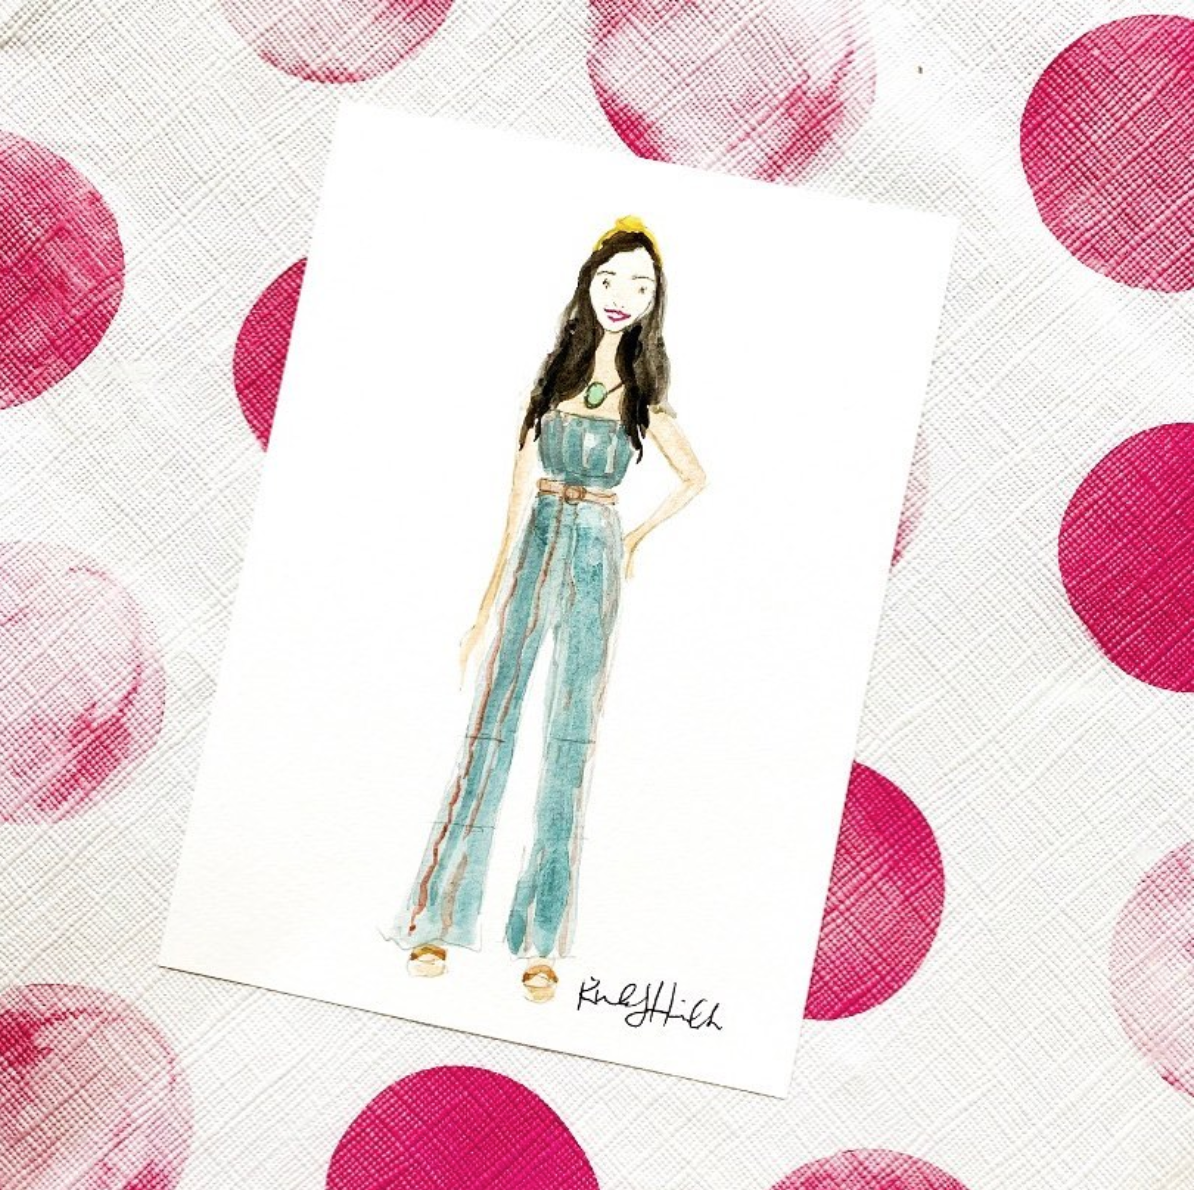 live-fashion-illustration-by-ladyfolk-studio